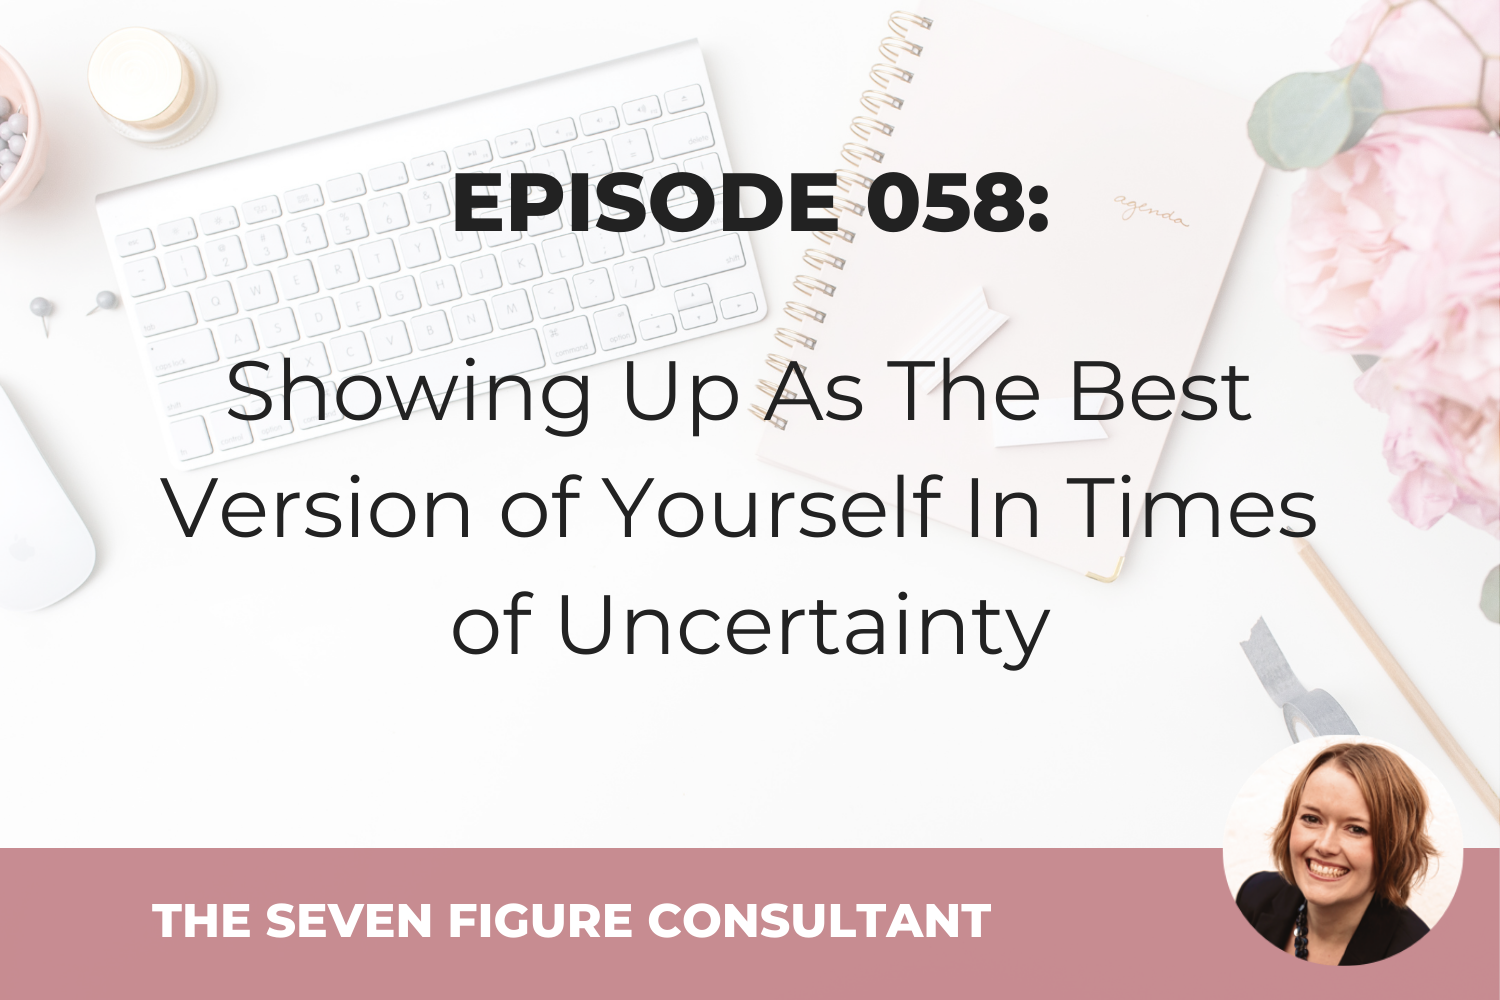 Episode 058: Showing Up As The Best Version of Yourself In Times of Uncertainty